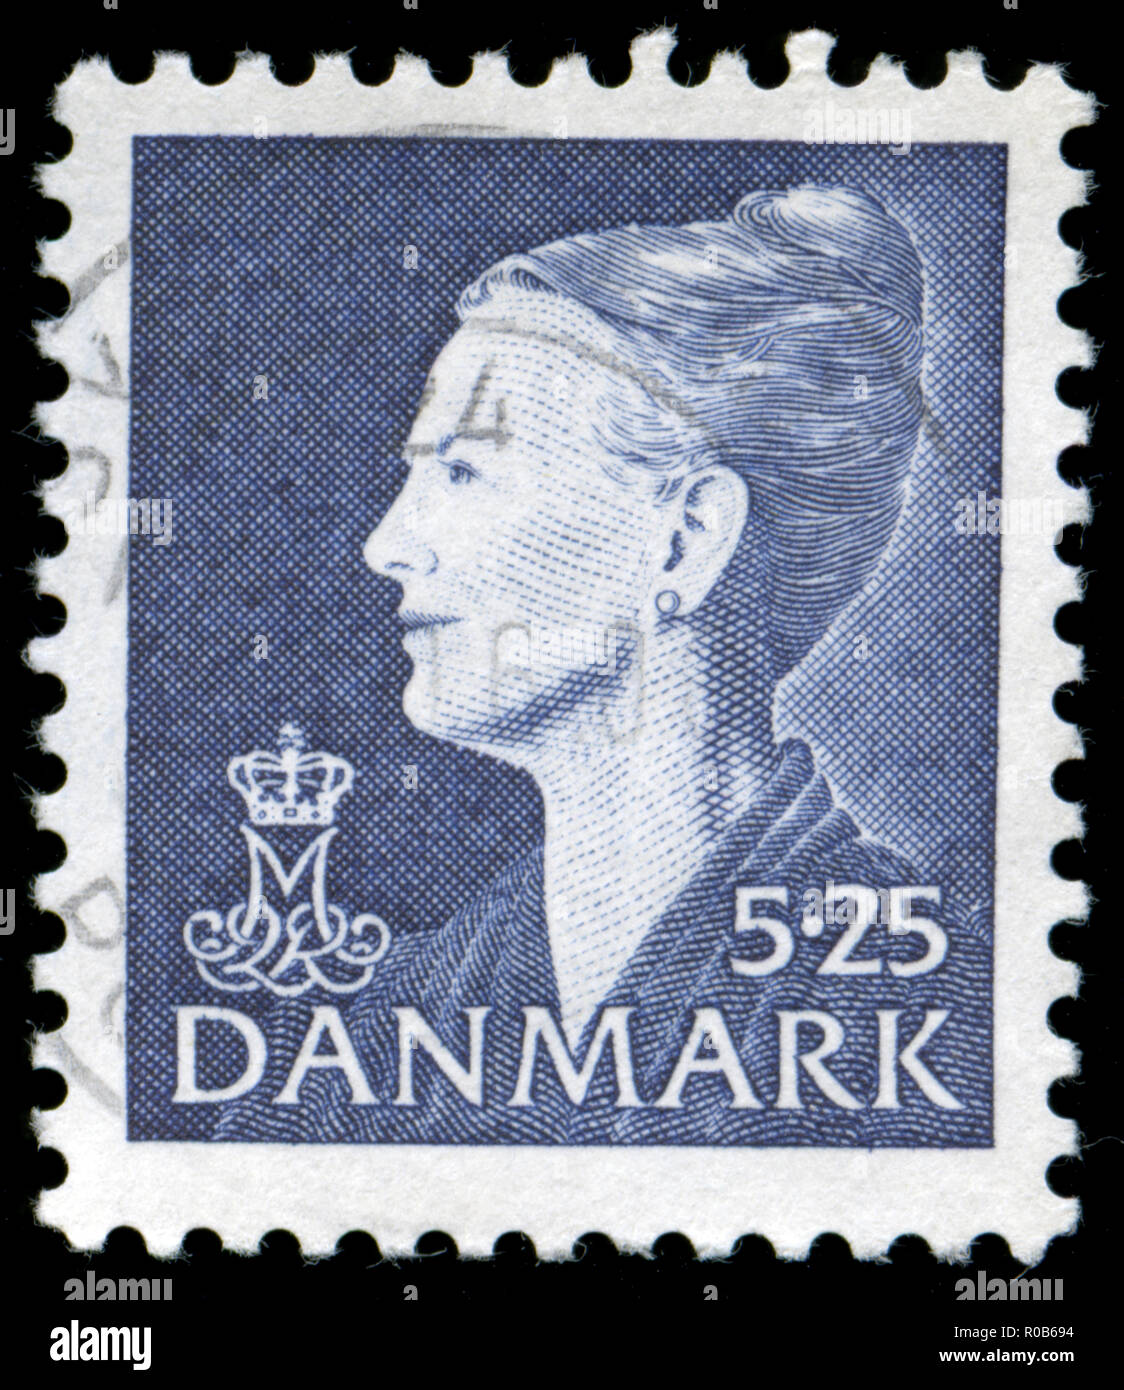 Postmarked stamp from the Denmark in the Queen Margrethe II serie 4 - Stock Image